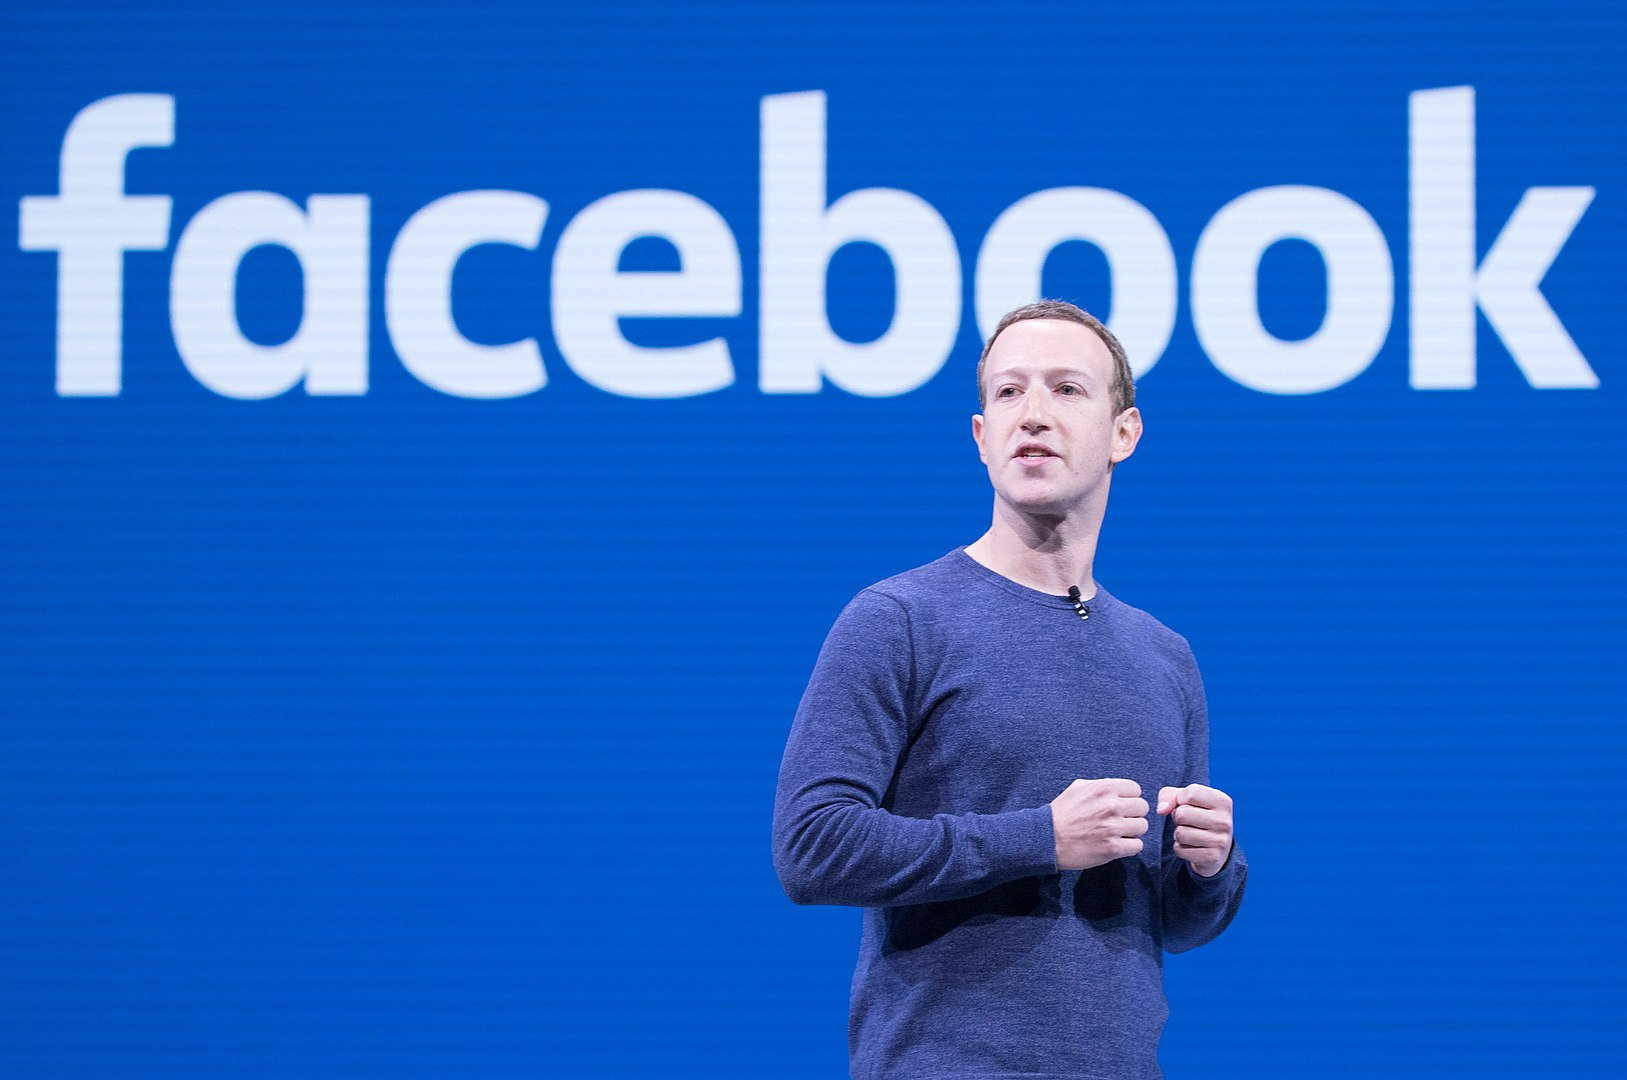 Facebook Removes Almost 200 Hate Group Accounts - InsideHook